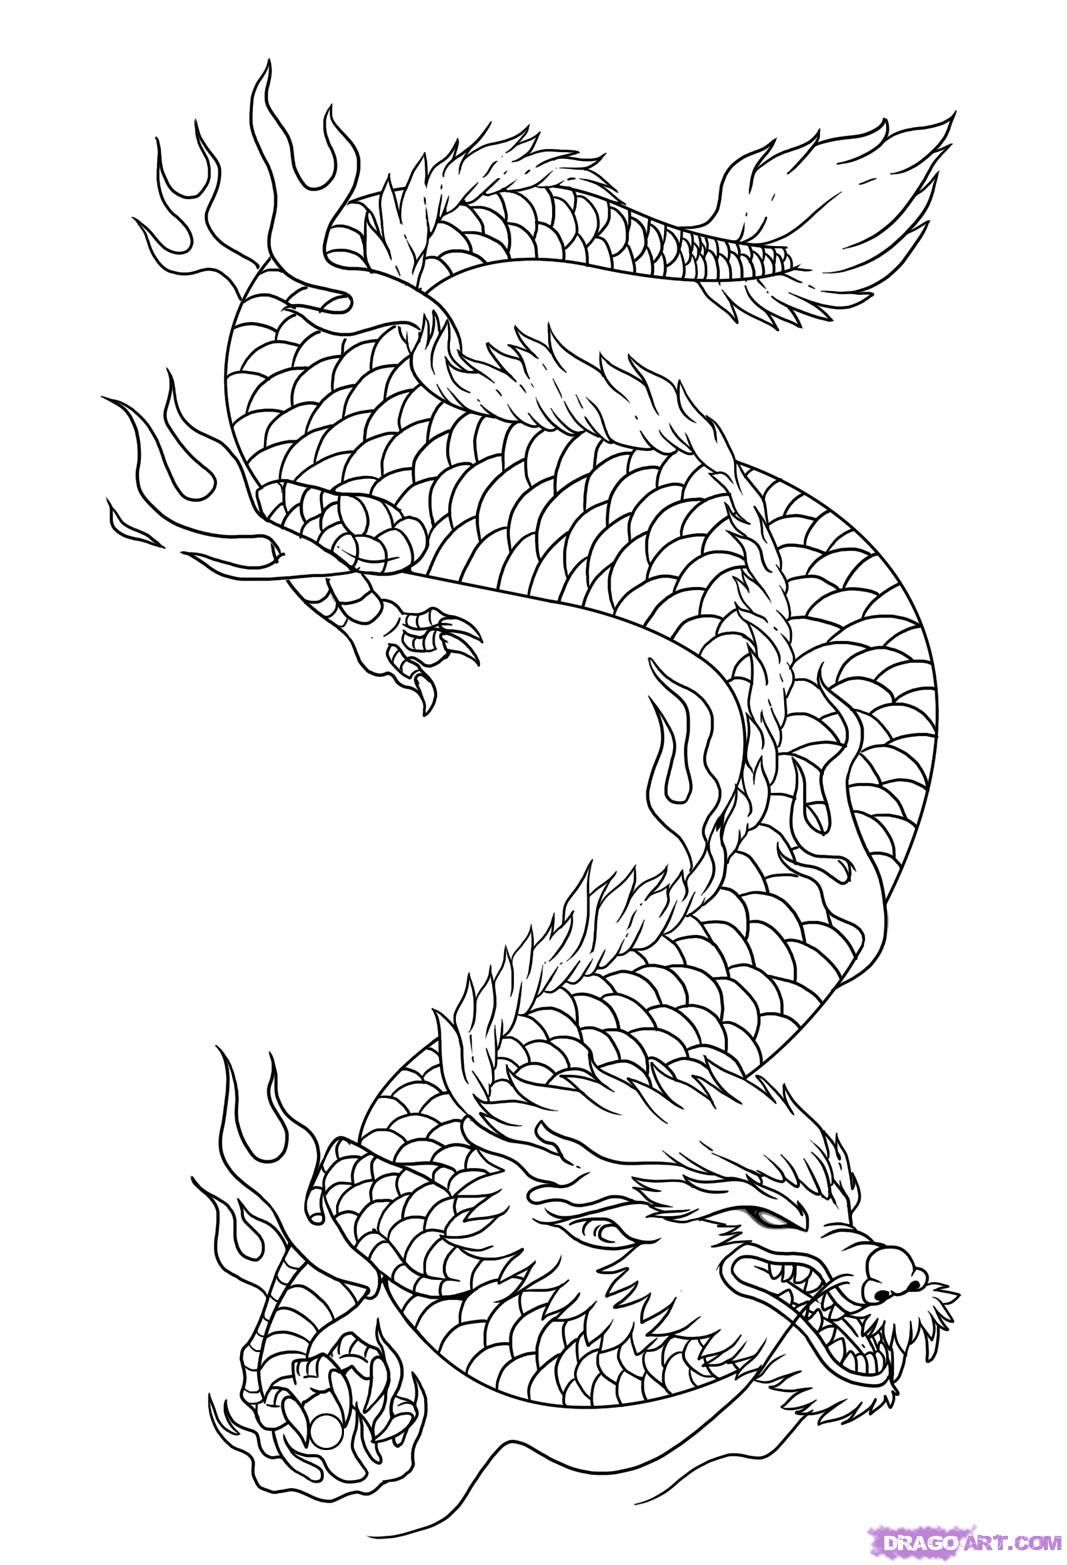 How To Draw A Japanese Dragon : japanese, dragon, Dragon, Drawings, Drawing,, Chinese